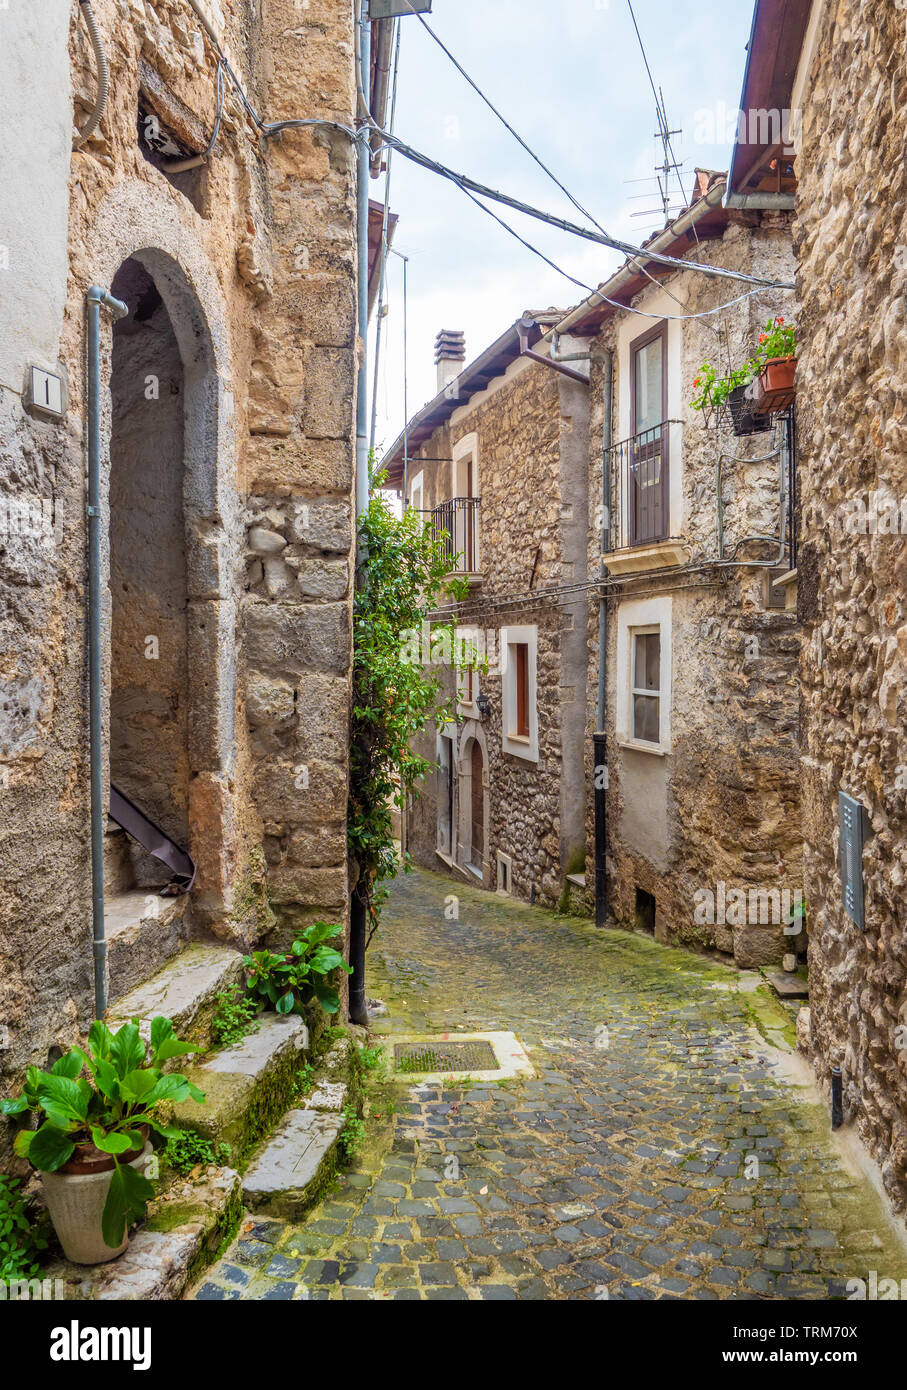 Assergi (Abruzzo, Italy) - A small charming medieval village surrounded by stone walls, in the municipality of L'Aquila, under the Gran Sasso mountain Stock Photo